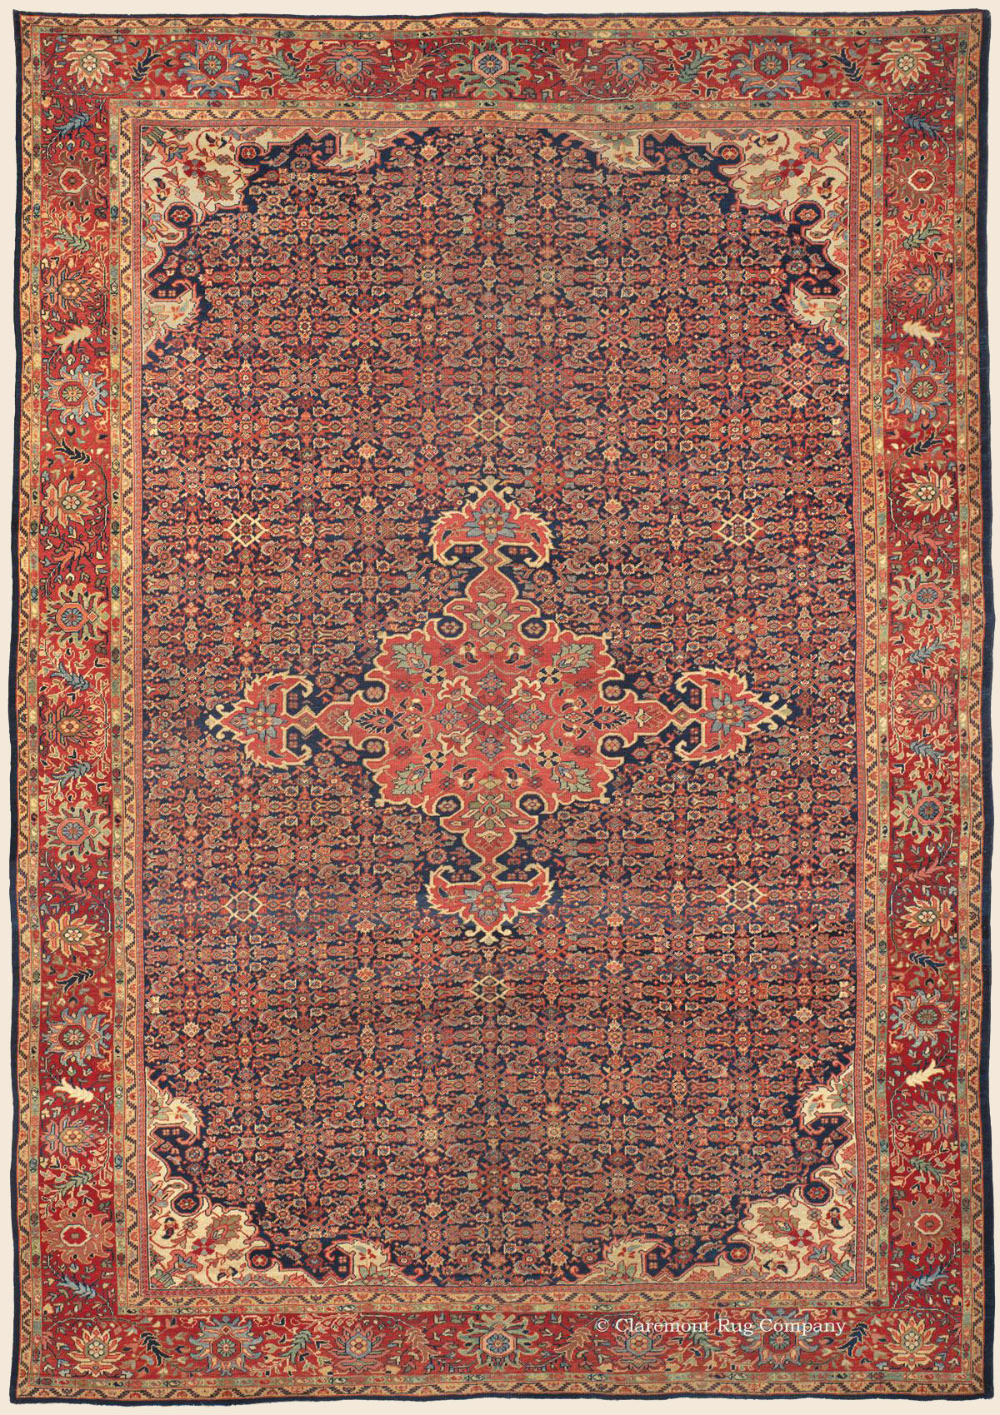 Antique Ziegler Sultanabad Rugs 9ft X 12ft With A Latticework Allover Herati Pattern Antique Rug Claremont Rug Compa In 2020 Sultanabad Rug Rugs On Carpet Tribal Rug